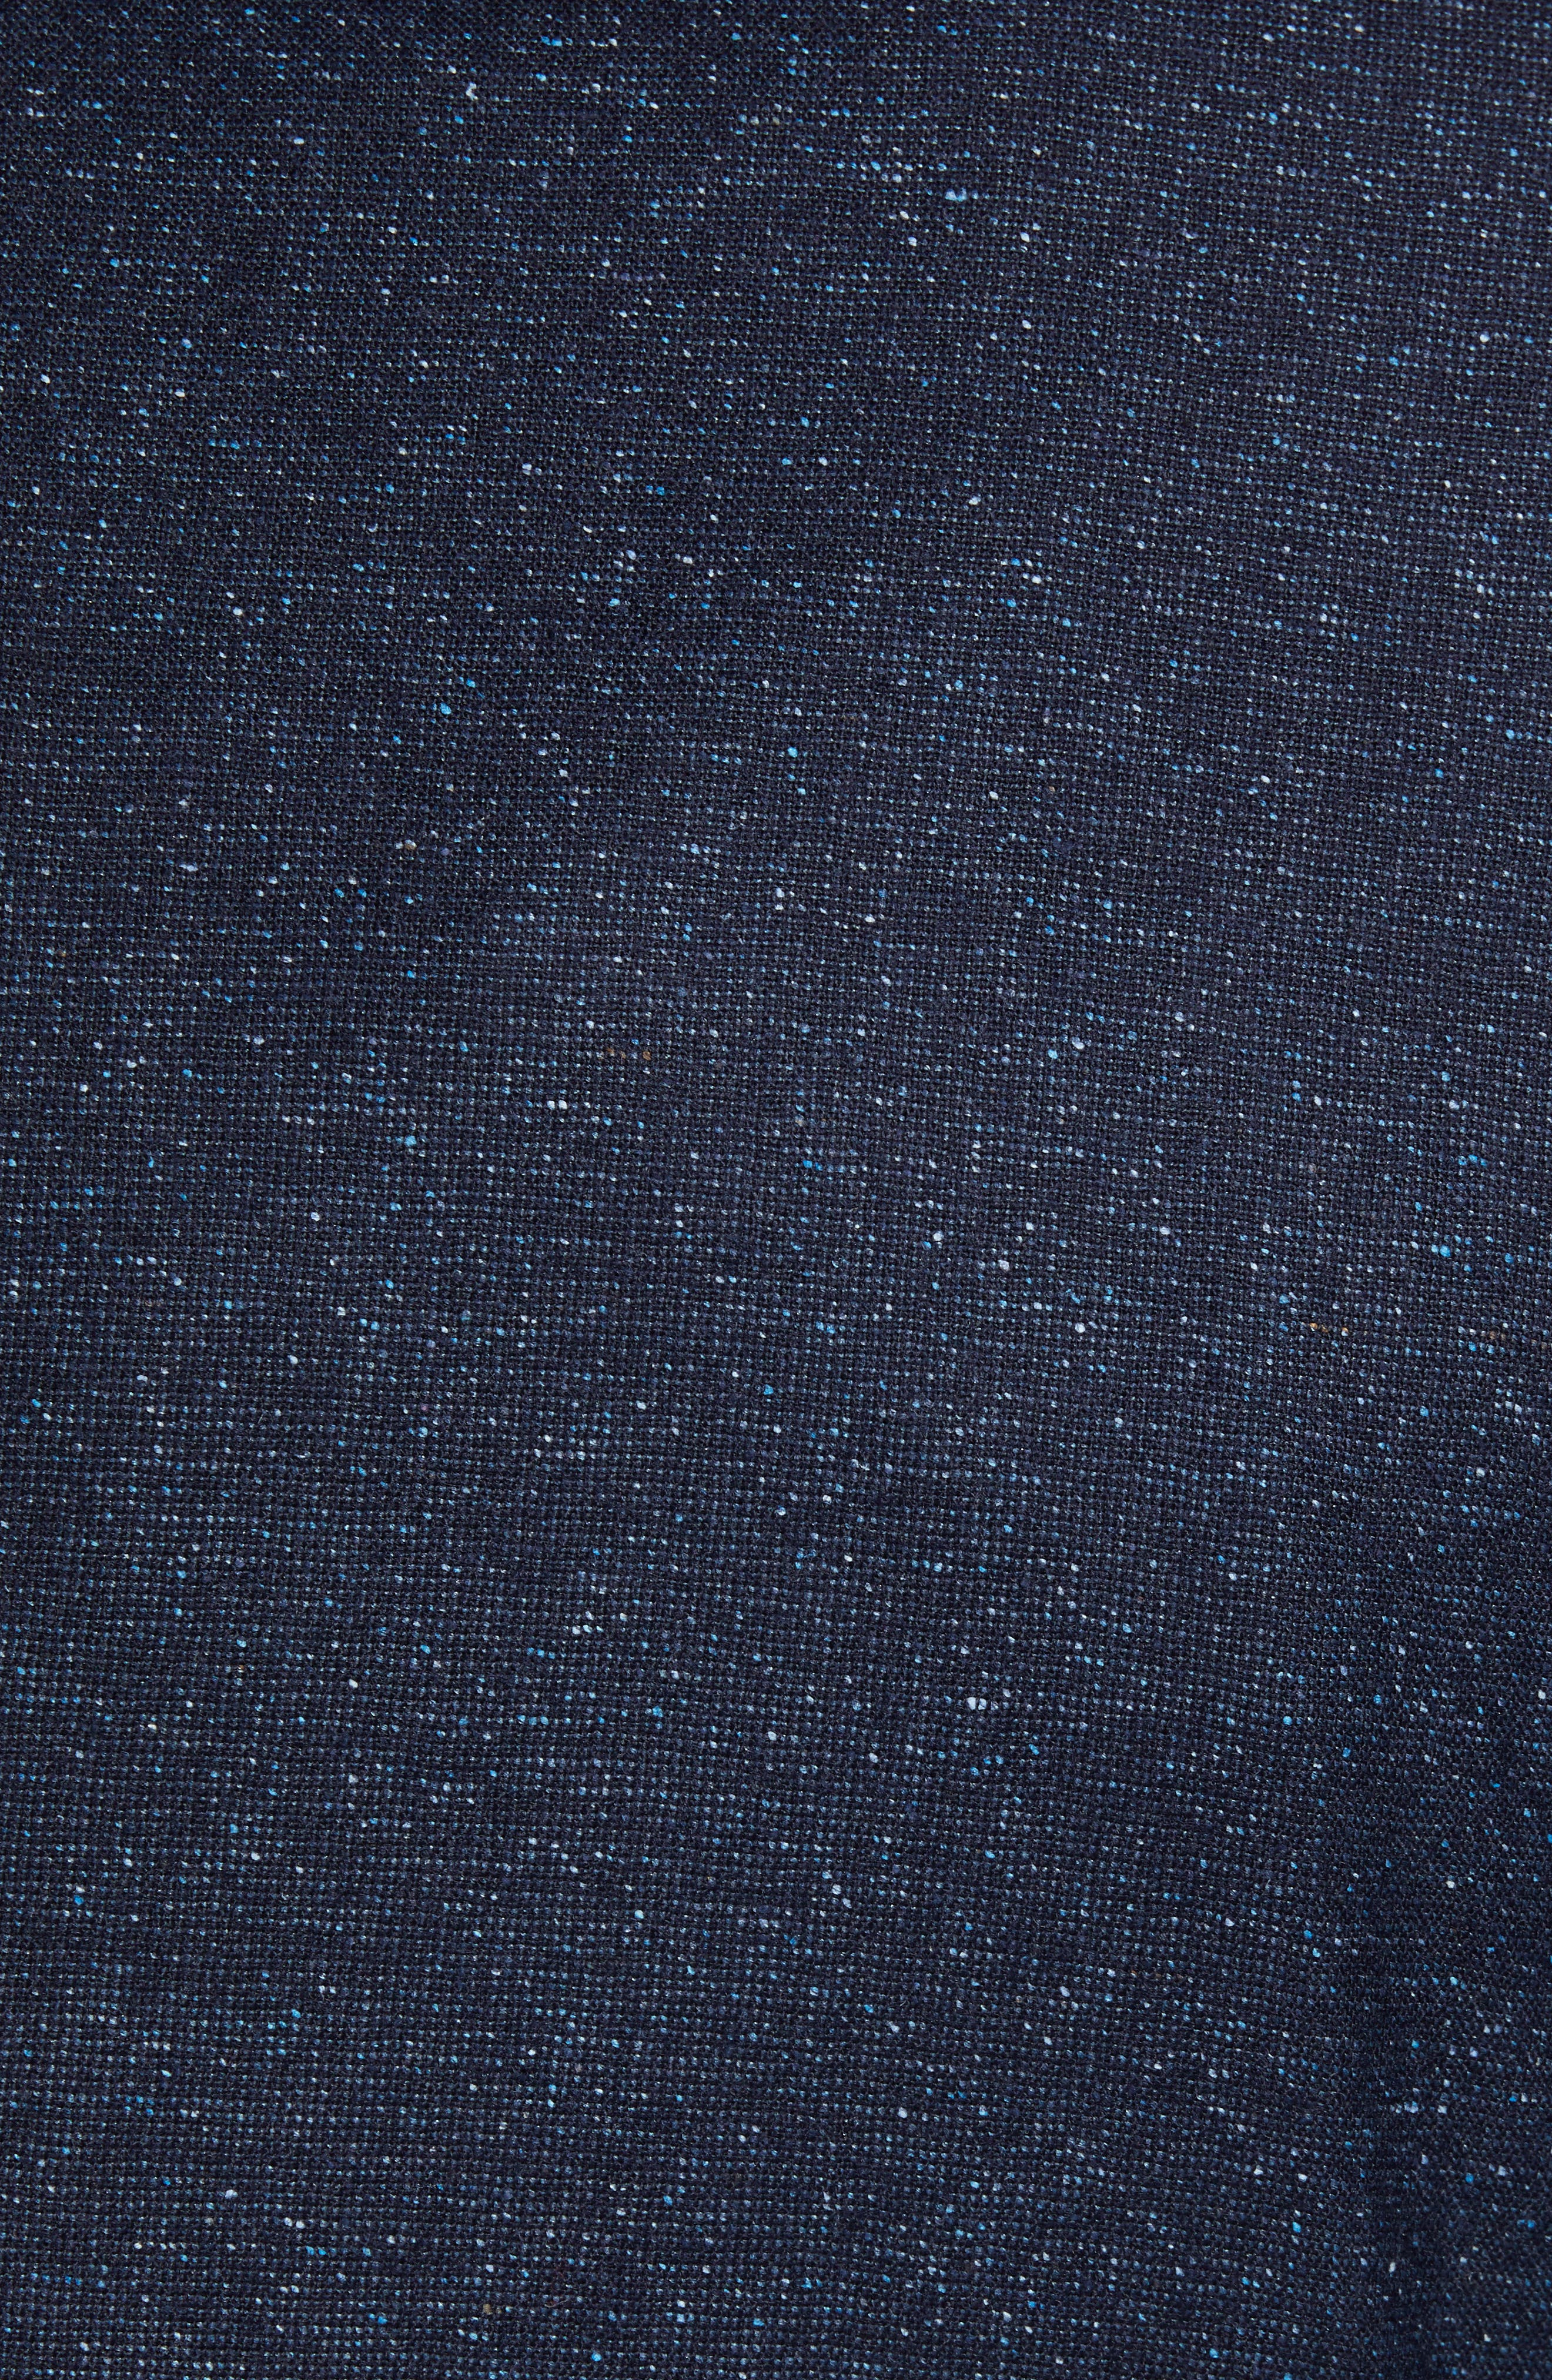 Extra Trim Fit Wool & Silk Soft Coat,                             Alternate thumbnail 6, color,                             NAVY